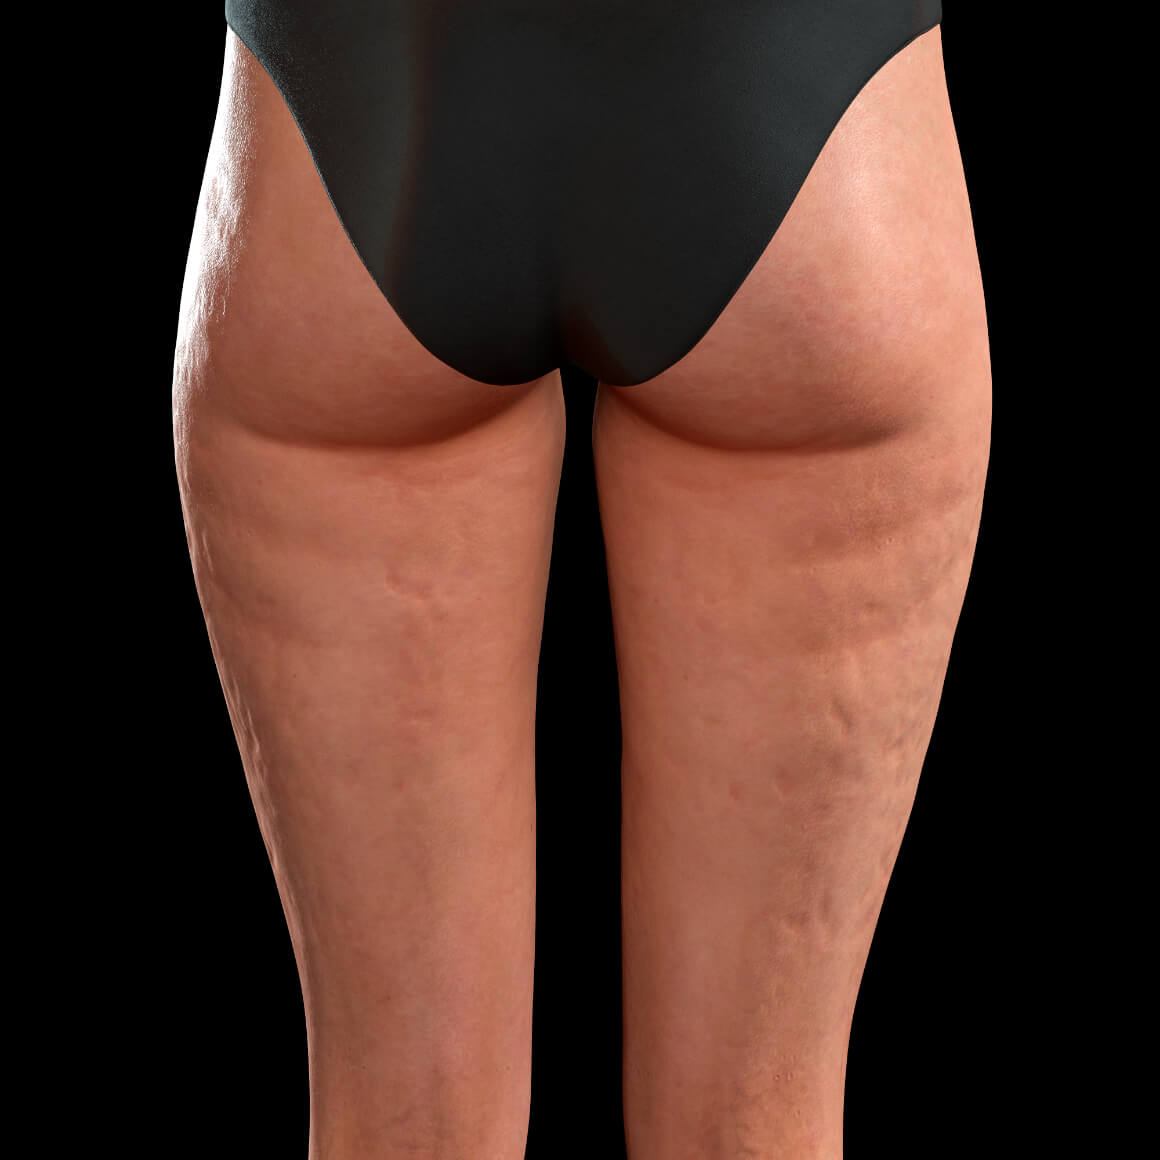 Back thighs of a female patient from Clinique Chloé showing cellulite